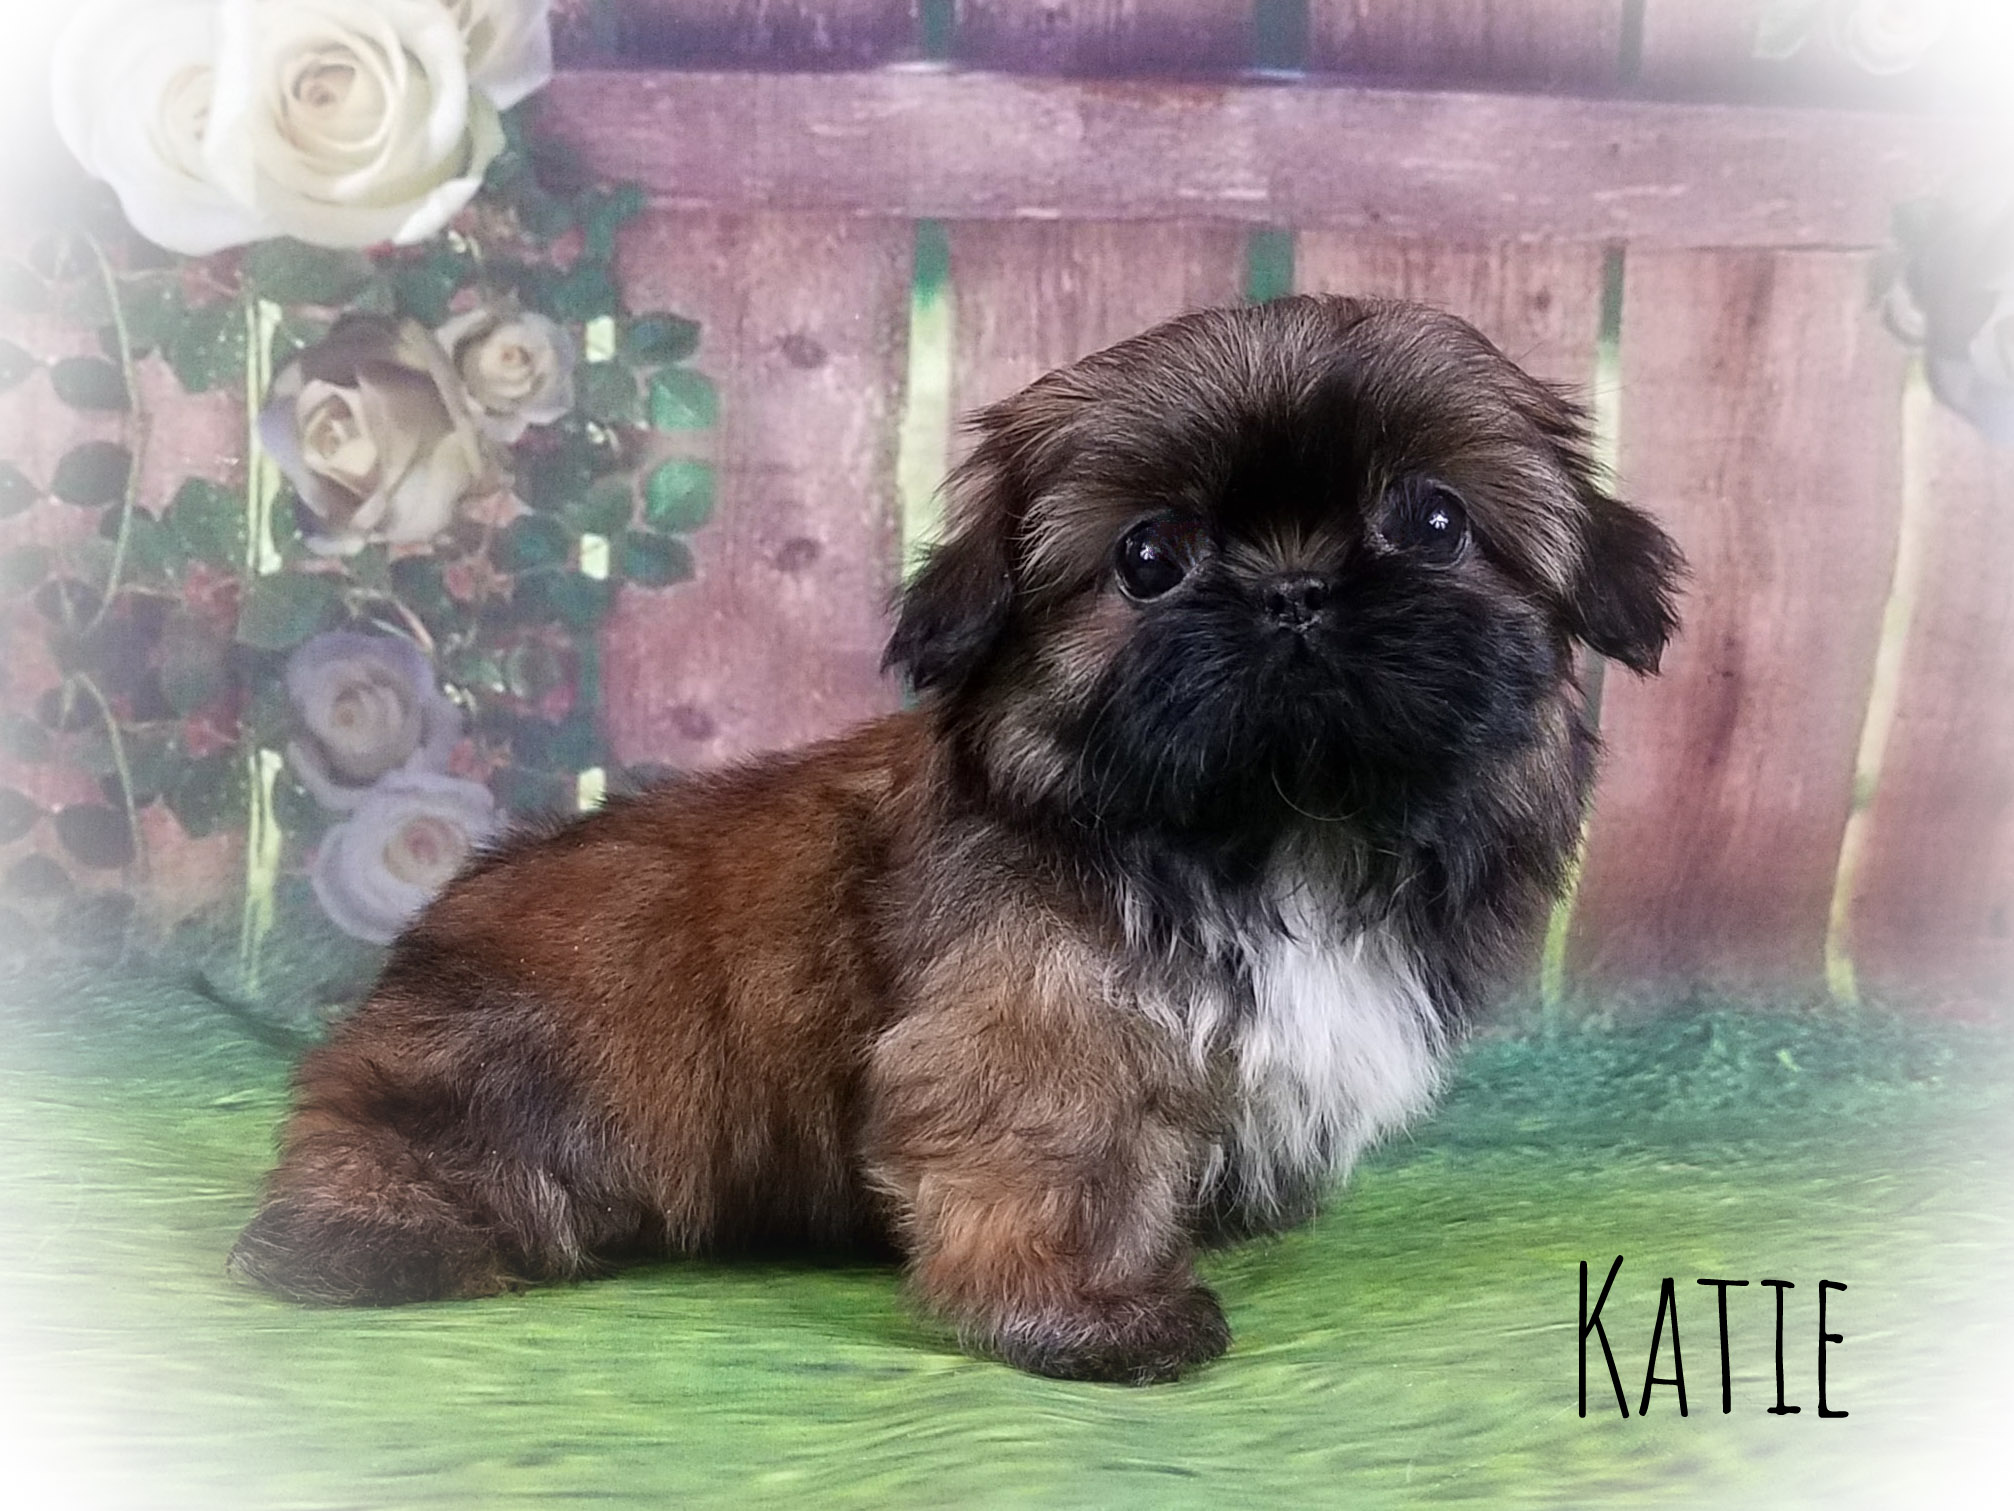 Imperial Shih Tzu Female Puppy - Katie